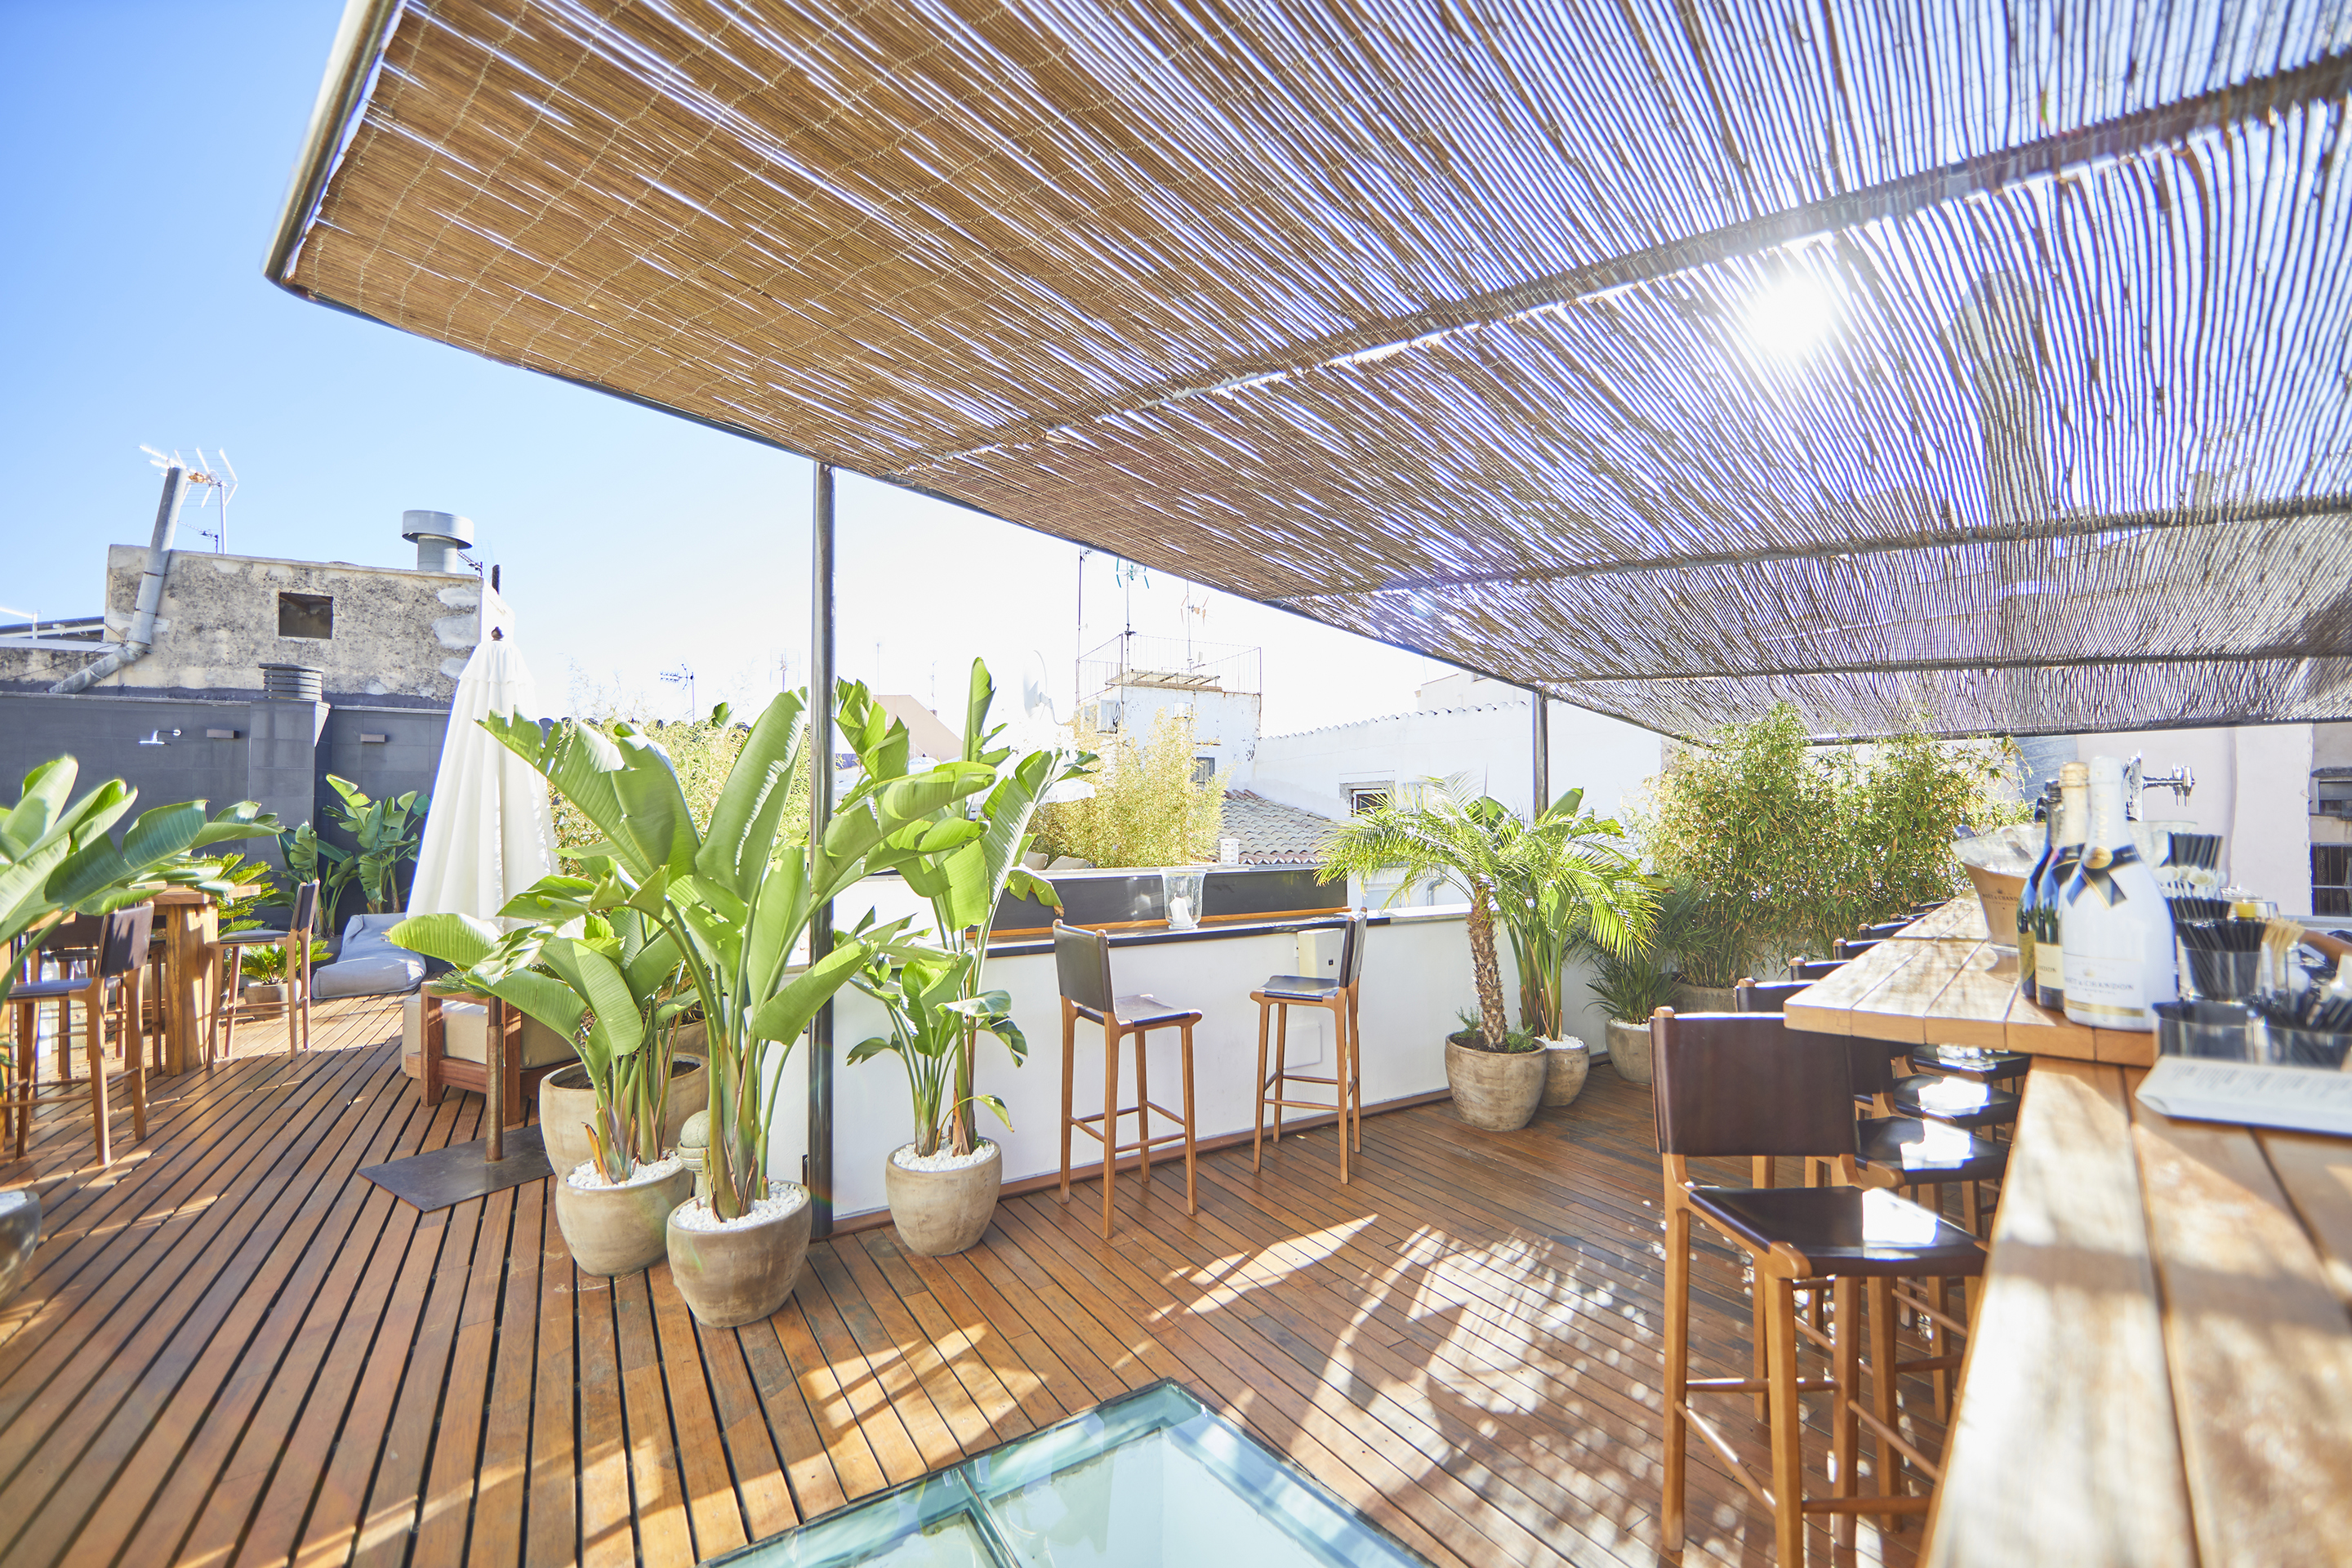 Canopy bar area and roof terrace - Luxury hotels Palma